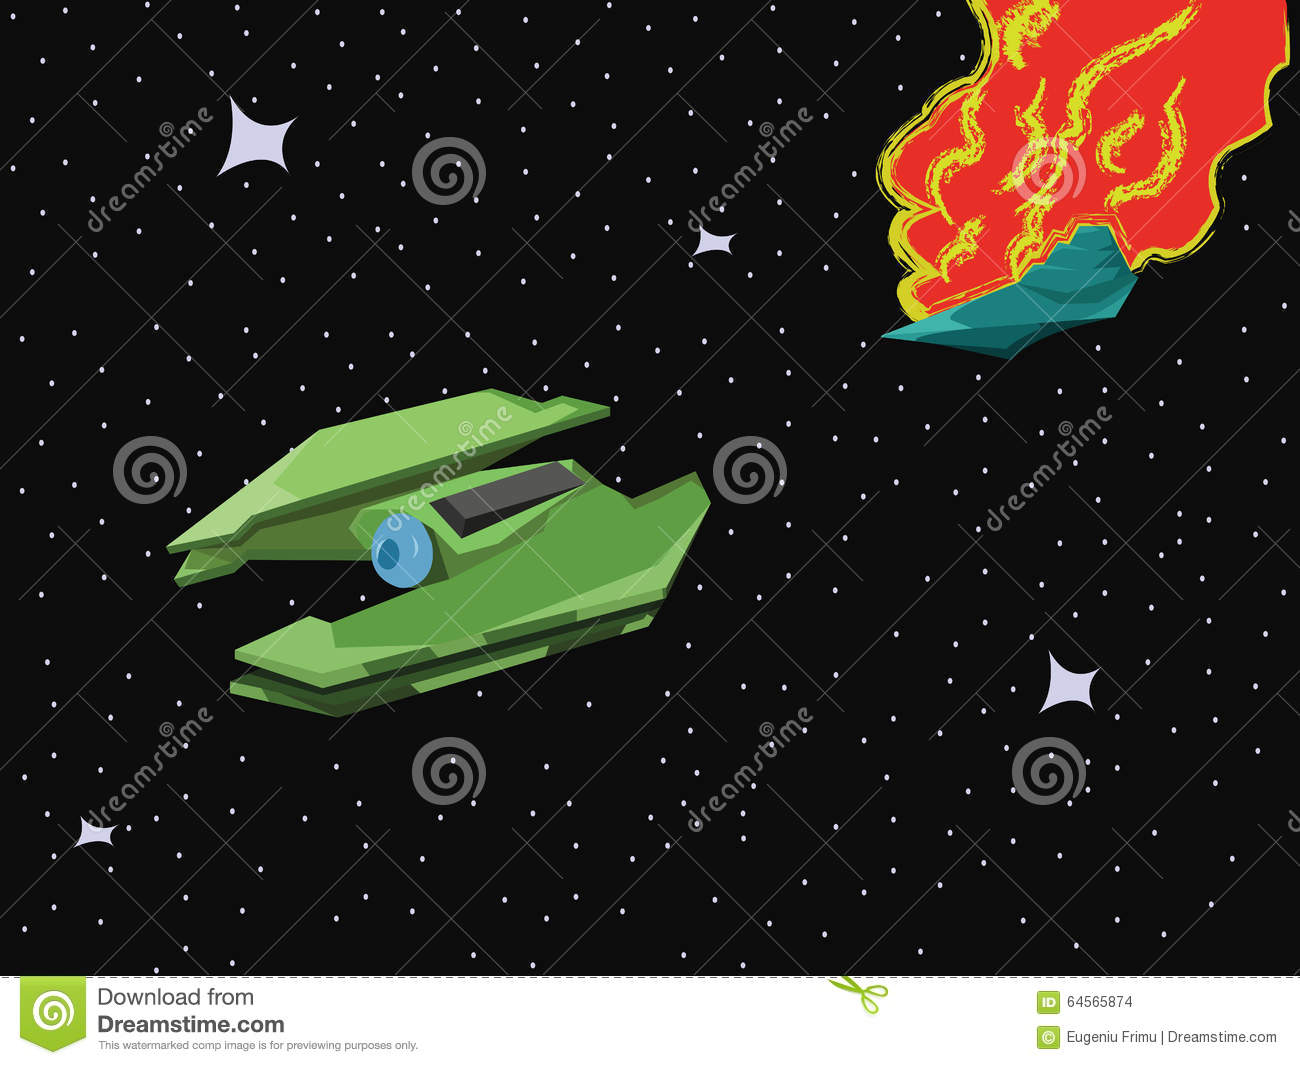 Spacecraft space blast stock vector image 64565874 for Space blast 3d